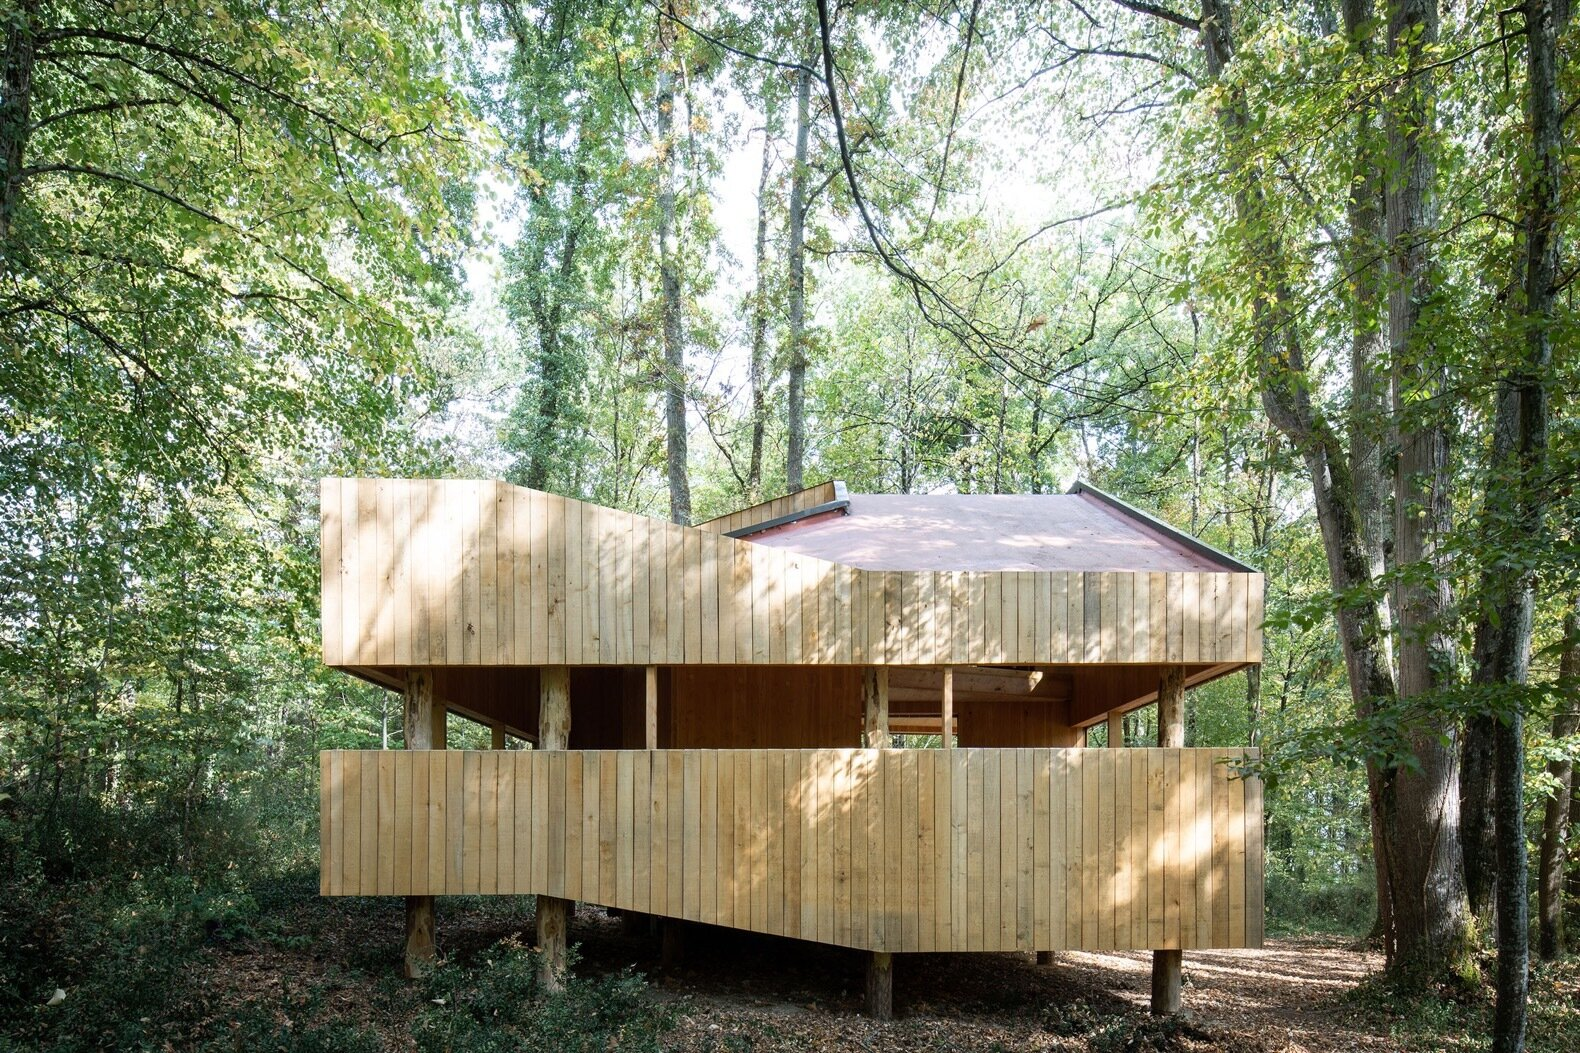 100% Wooden House exterior